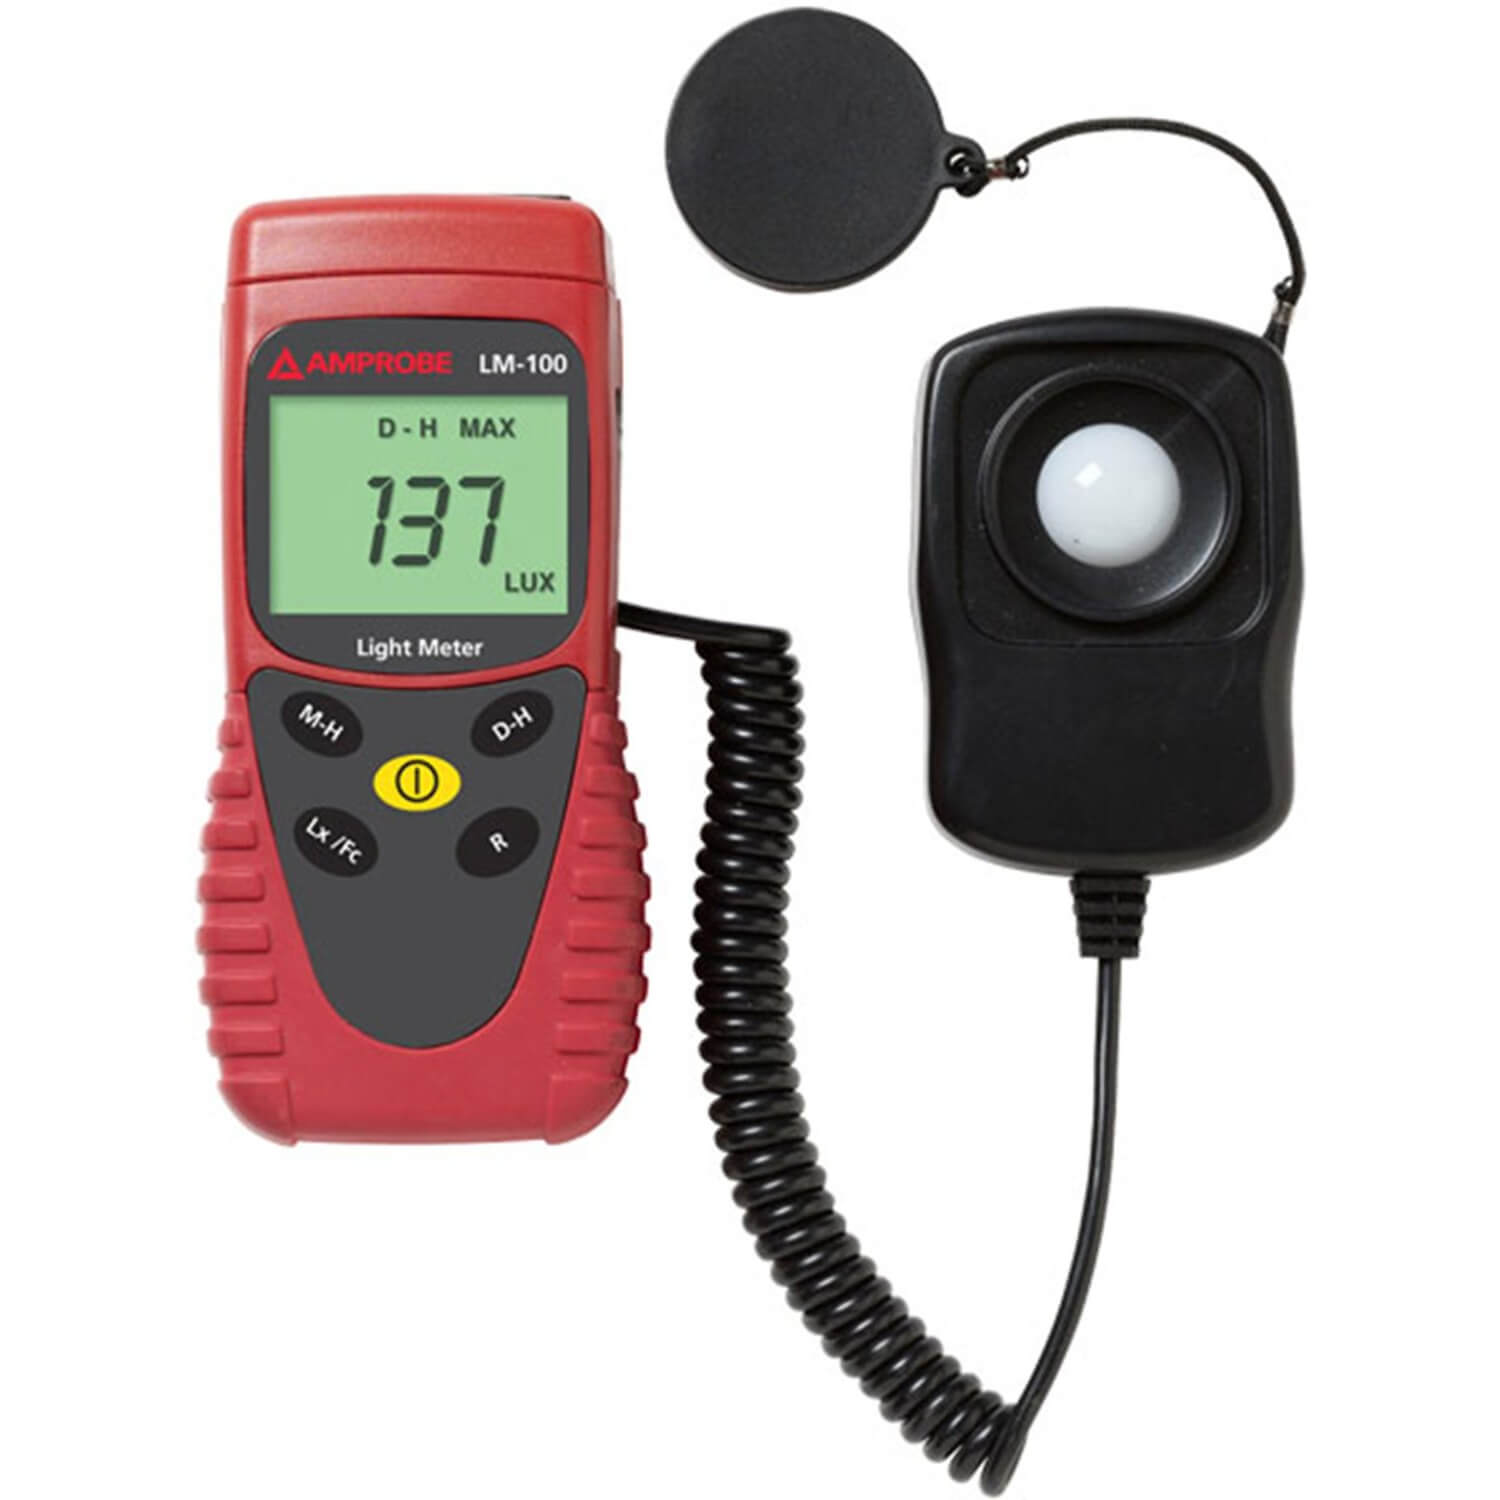 Amprobe LM-100 Handheld Light Meter